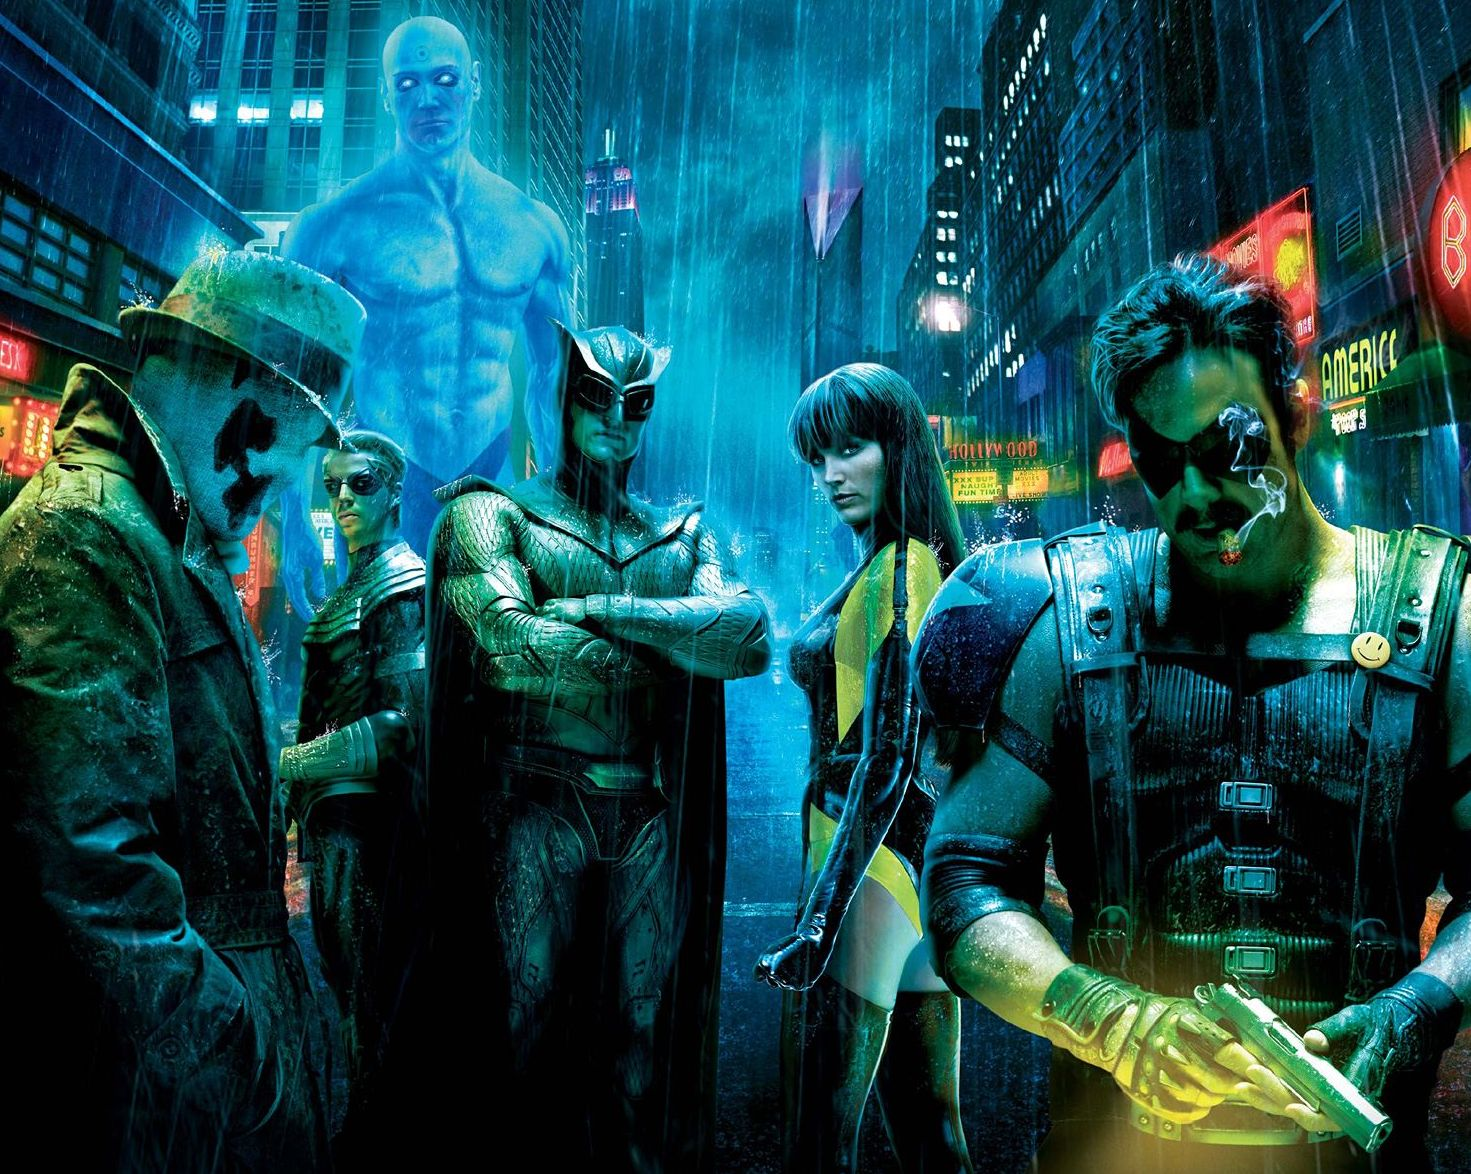 There's a very ambitious adaptation on this Zack Snyder movies list.